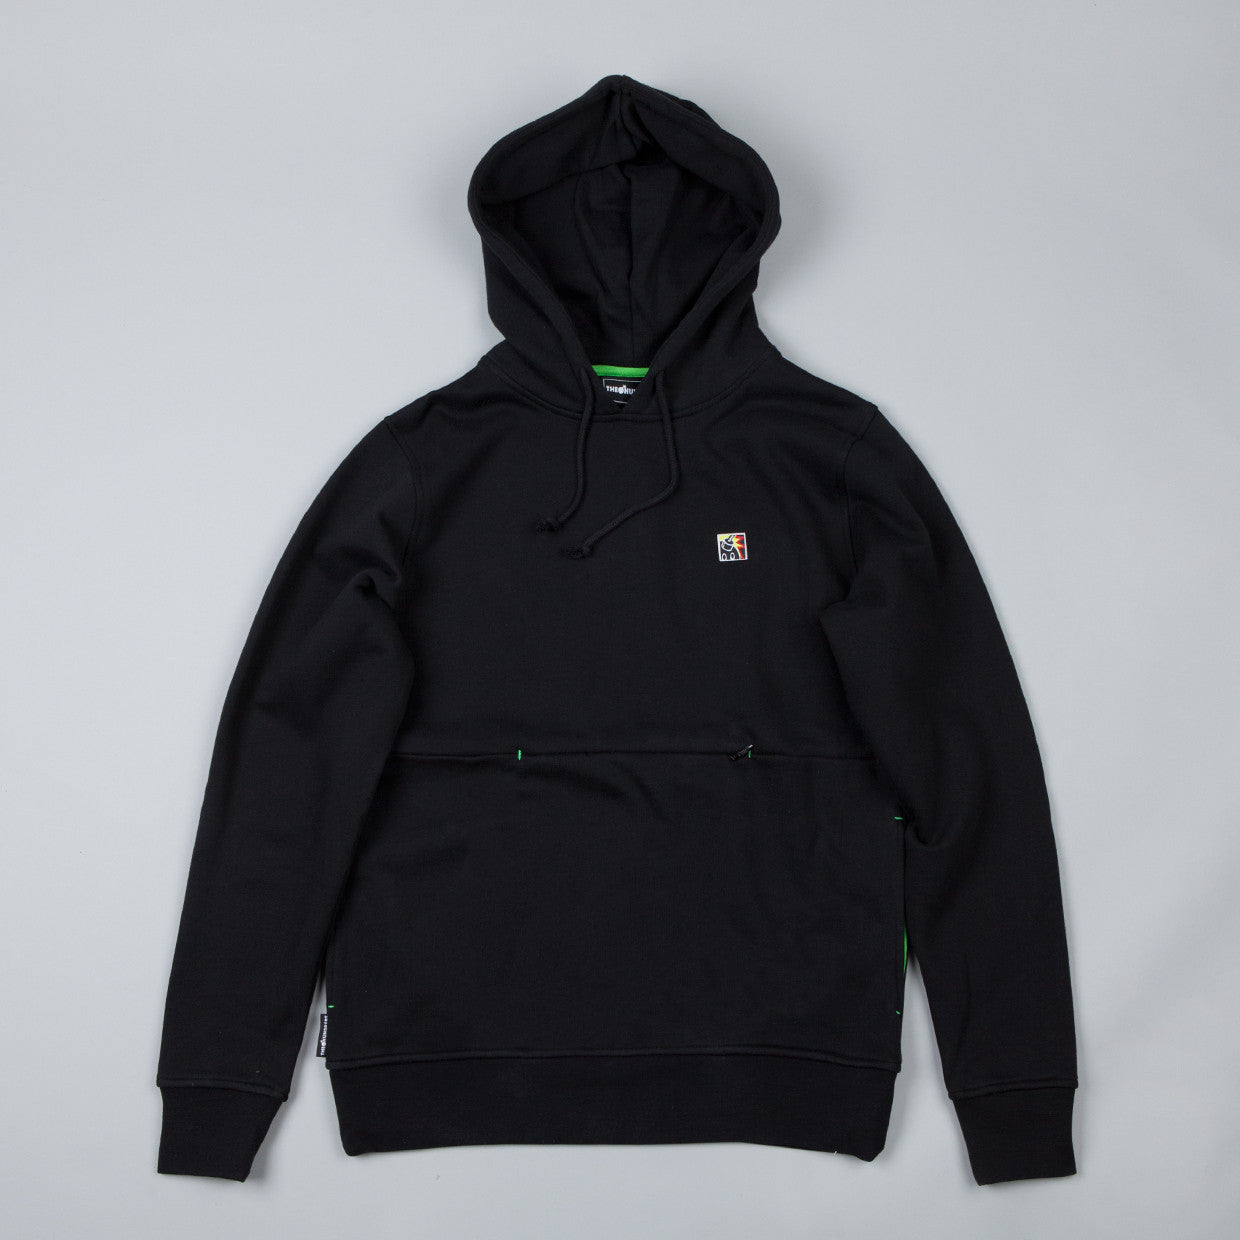 The Hundreds Tone Hooded sweatshirt Black